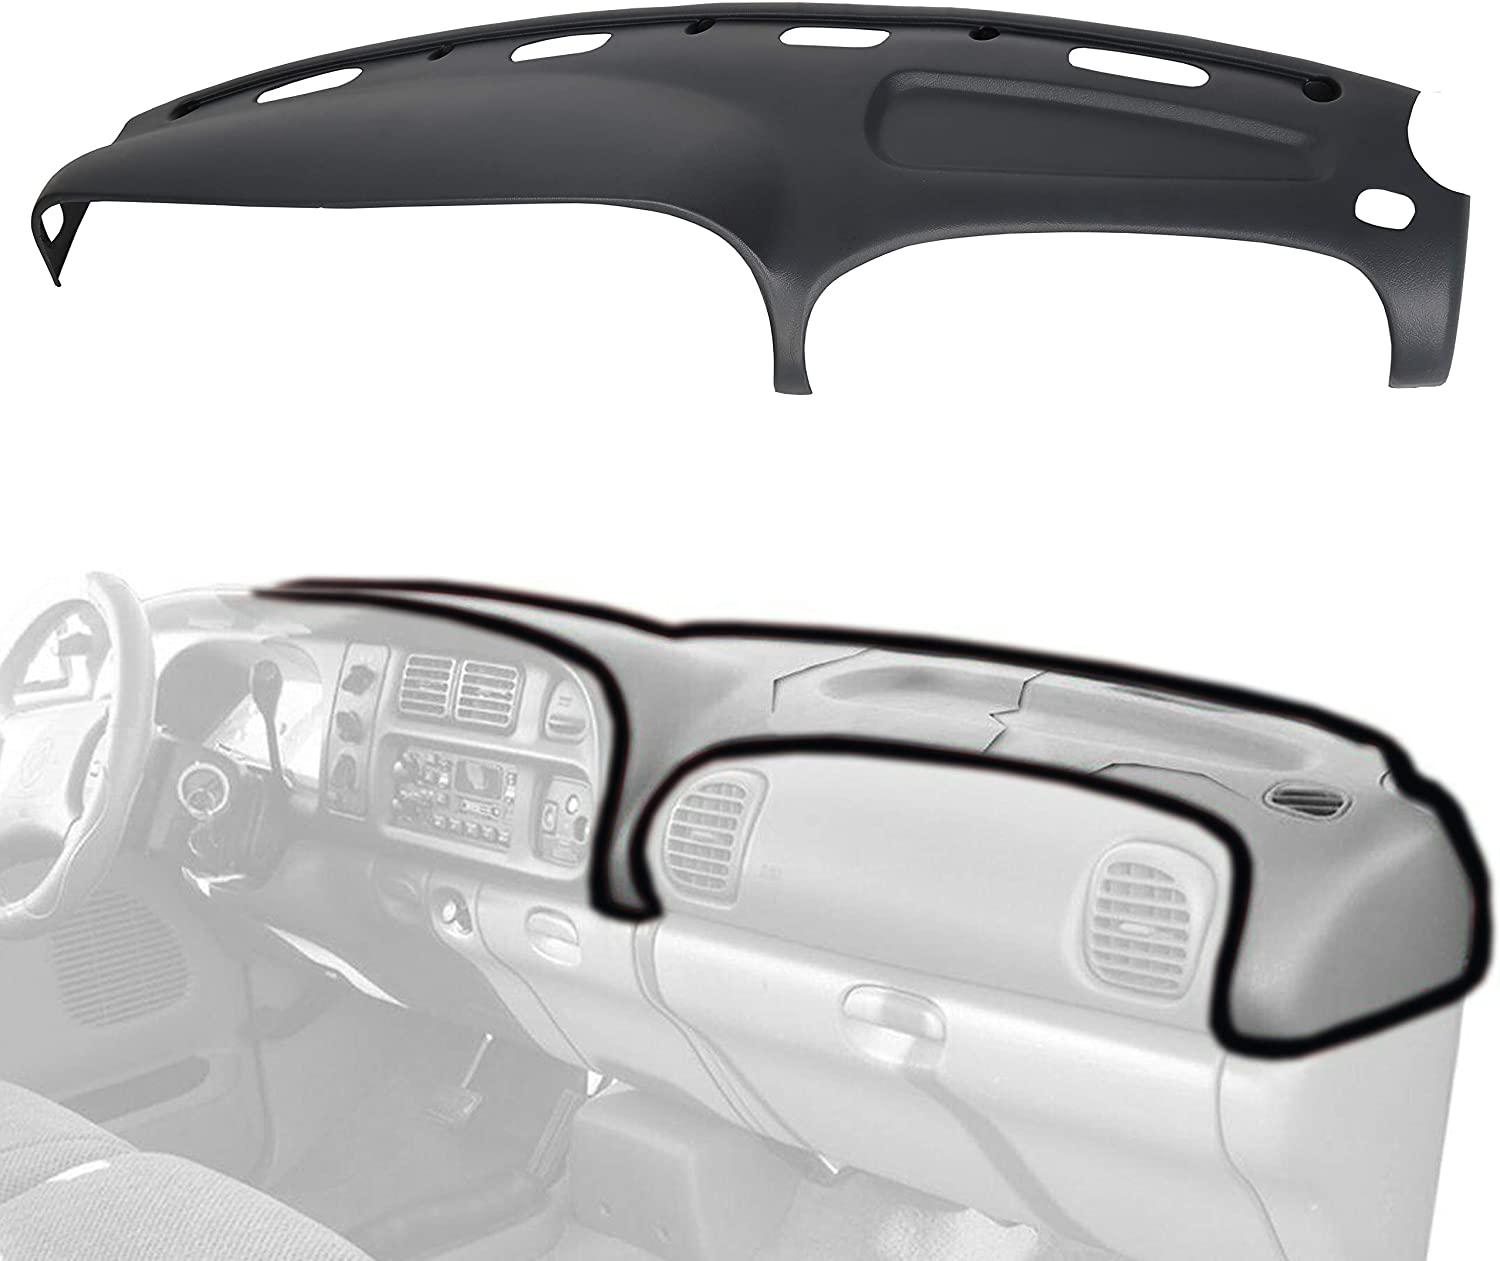 ECOTRIC Dash Board Pad Cover Molded Compatible with 1998-2002 Dodge Ram15002500 3500 - Dash Protector Dashboard Overlay Grey